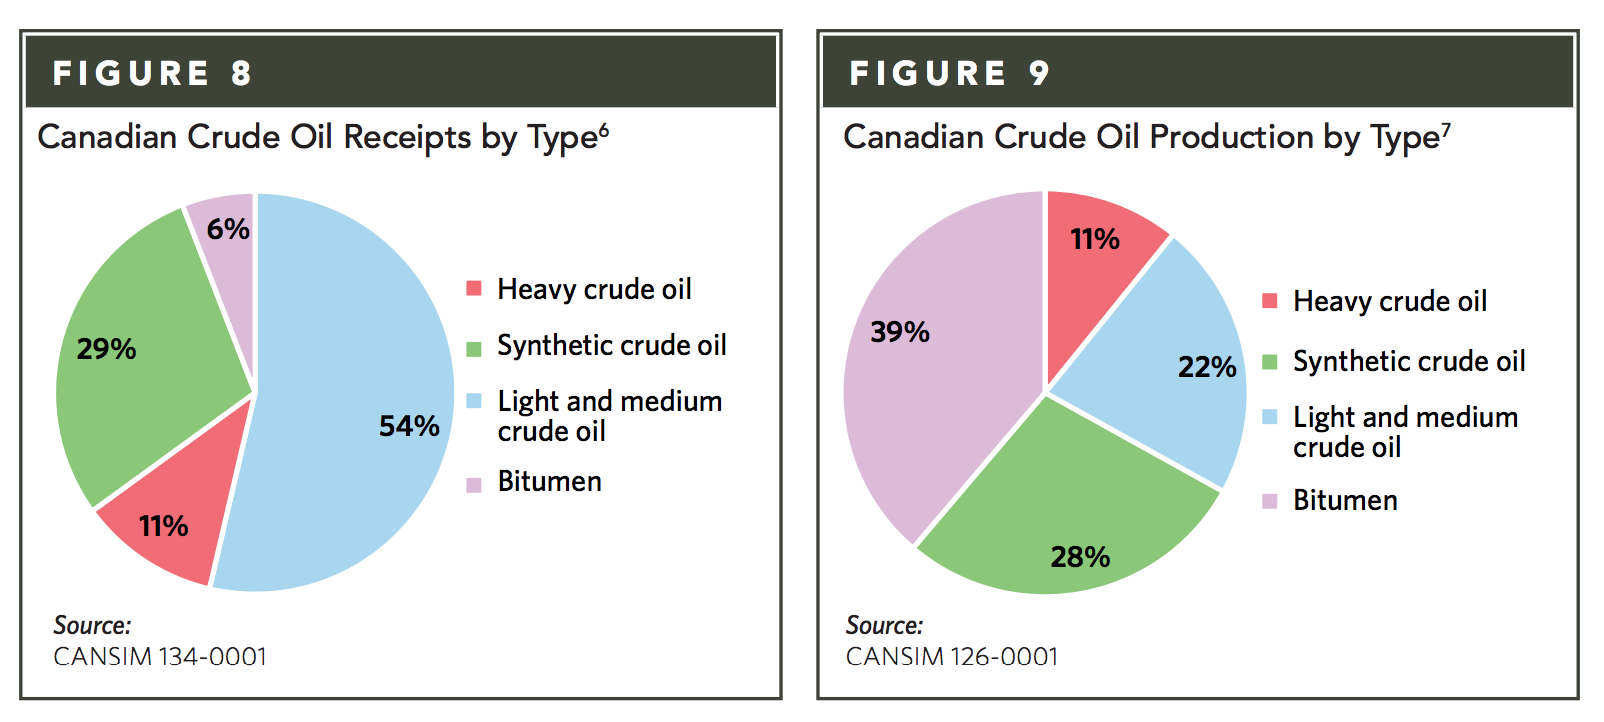 Should Canada refine its crude oil instead of, or before, exporting